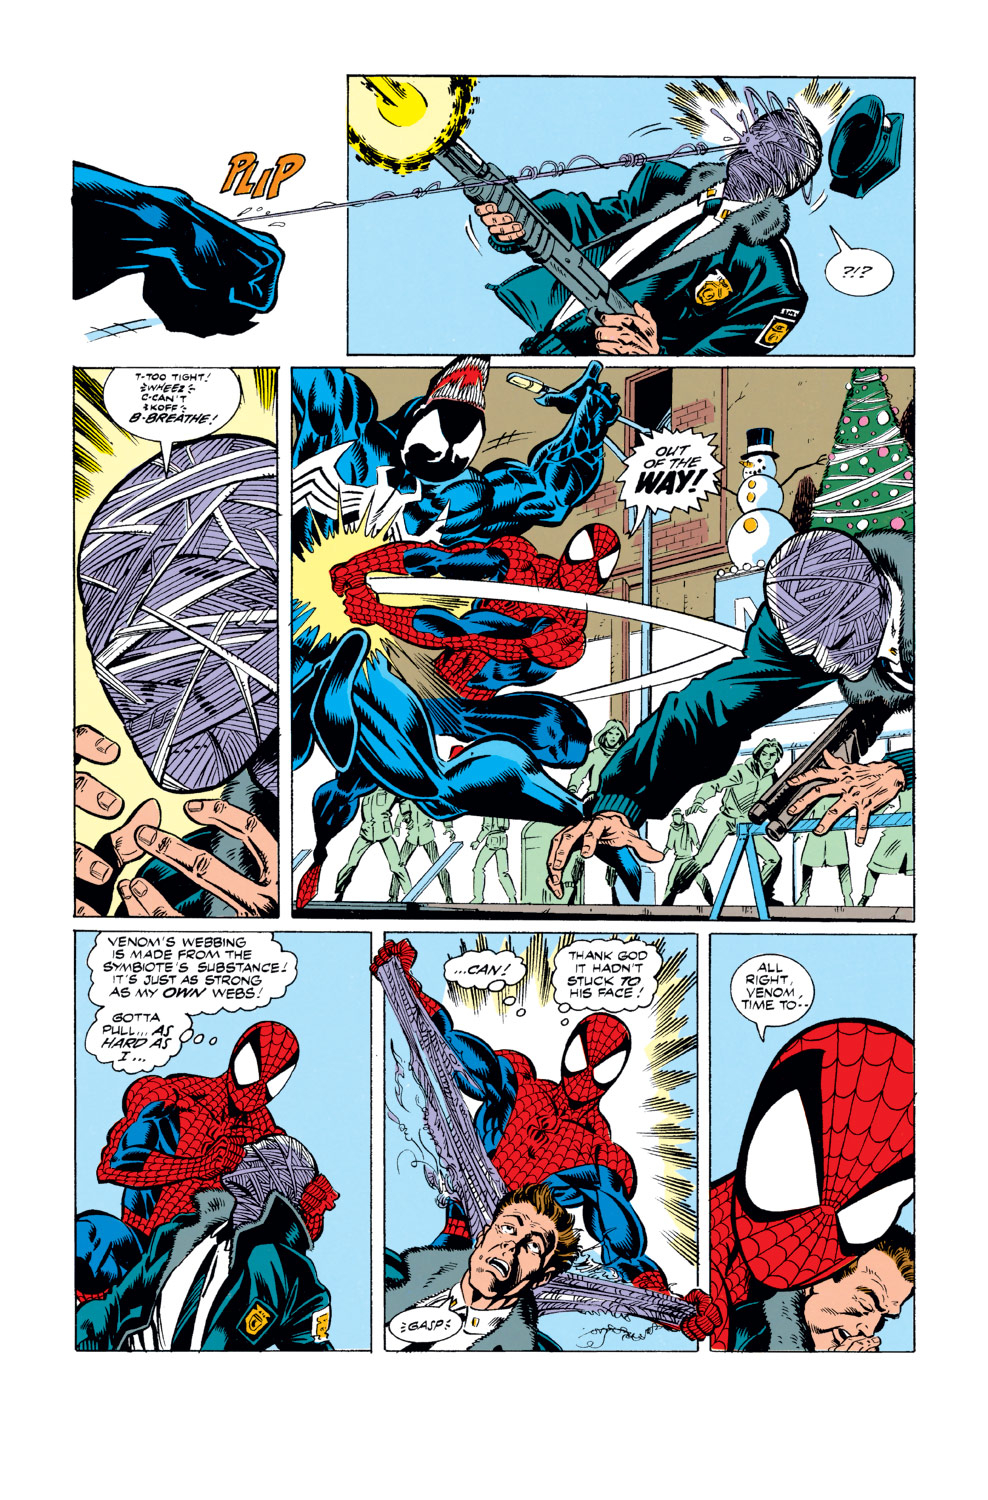 Venom's webbing is just as strong as his (also notable how Spider-Man and Iron Man is able to rip Venom's off, yet Iron Man apparently cannot for Peter's)